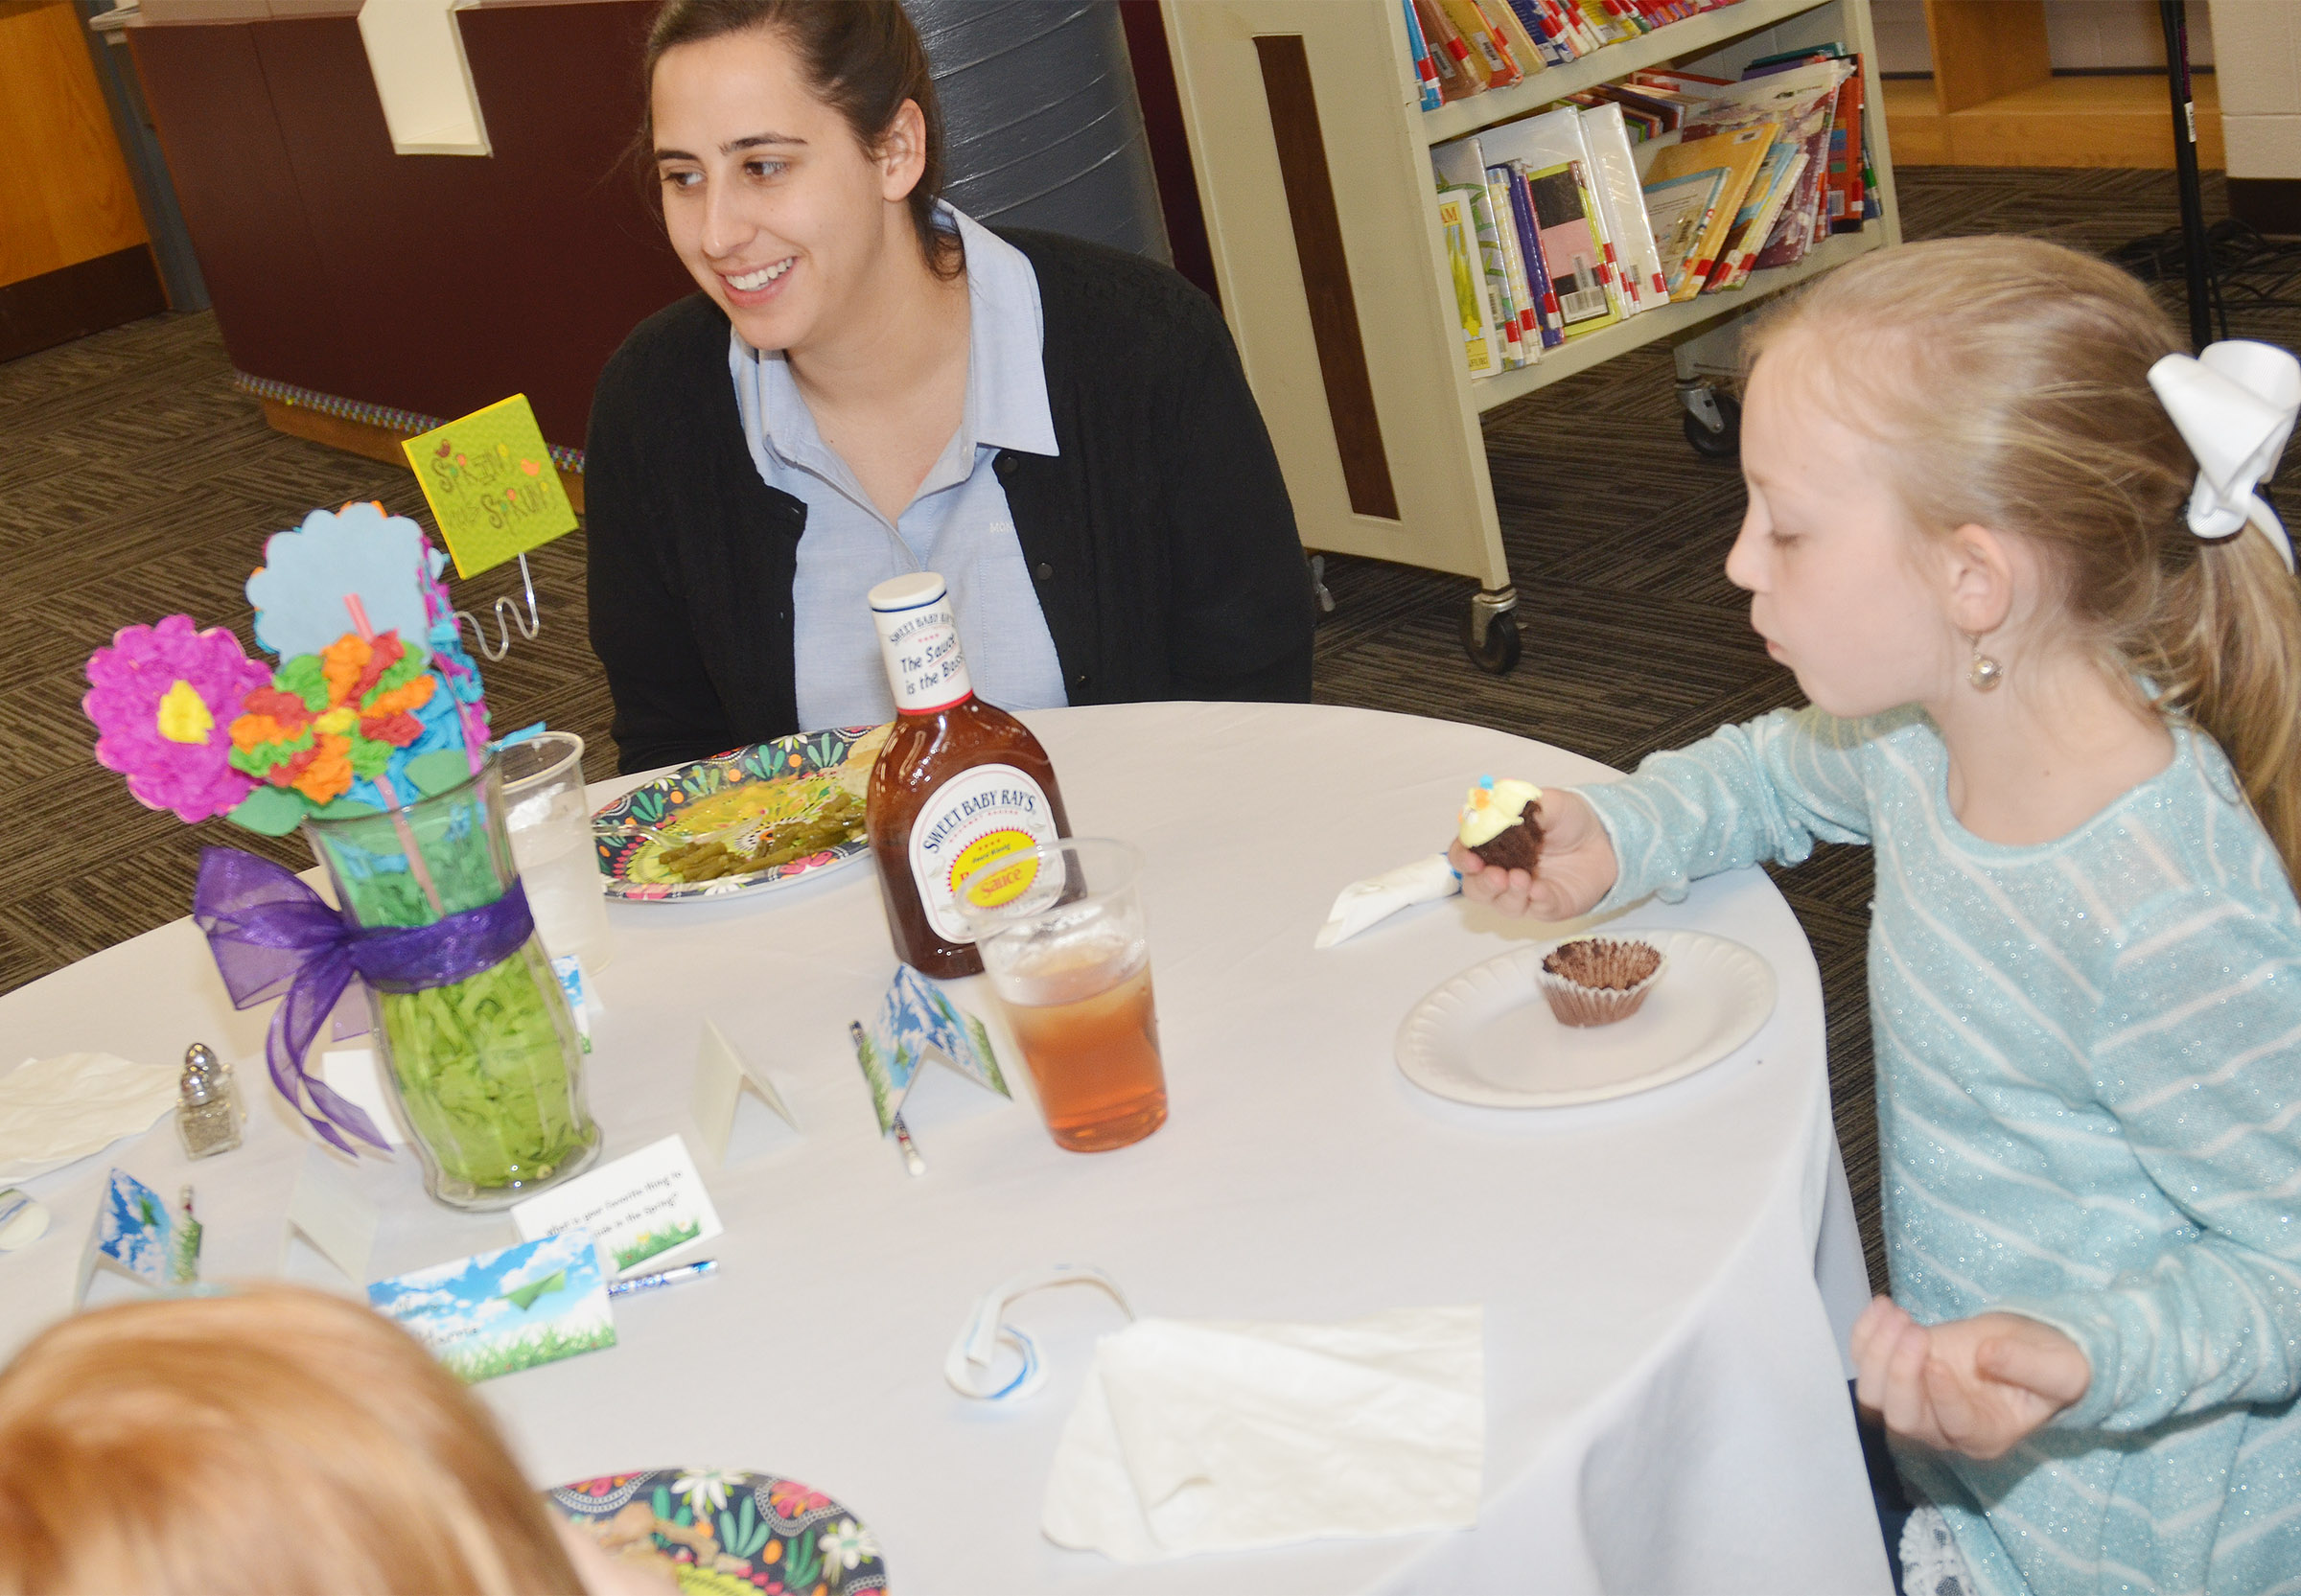 Abi Waldrupe, reference librarian at Campbellsville University's Montgomery Library, has lunch with third-grader Kendall Bright.